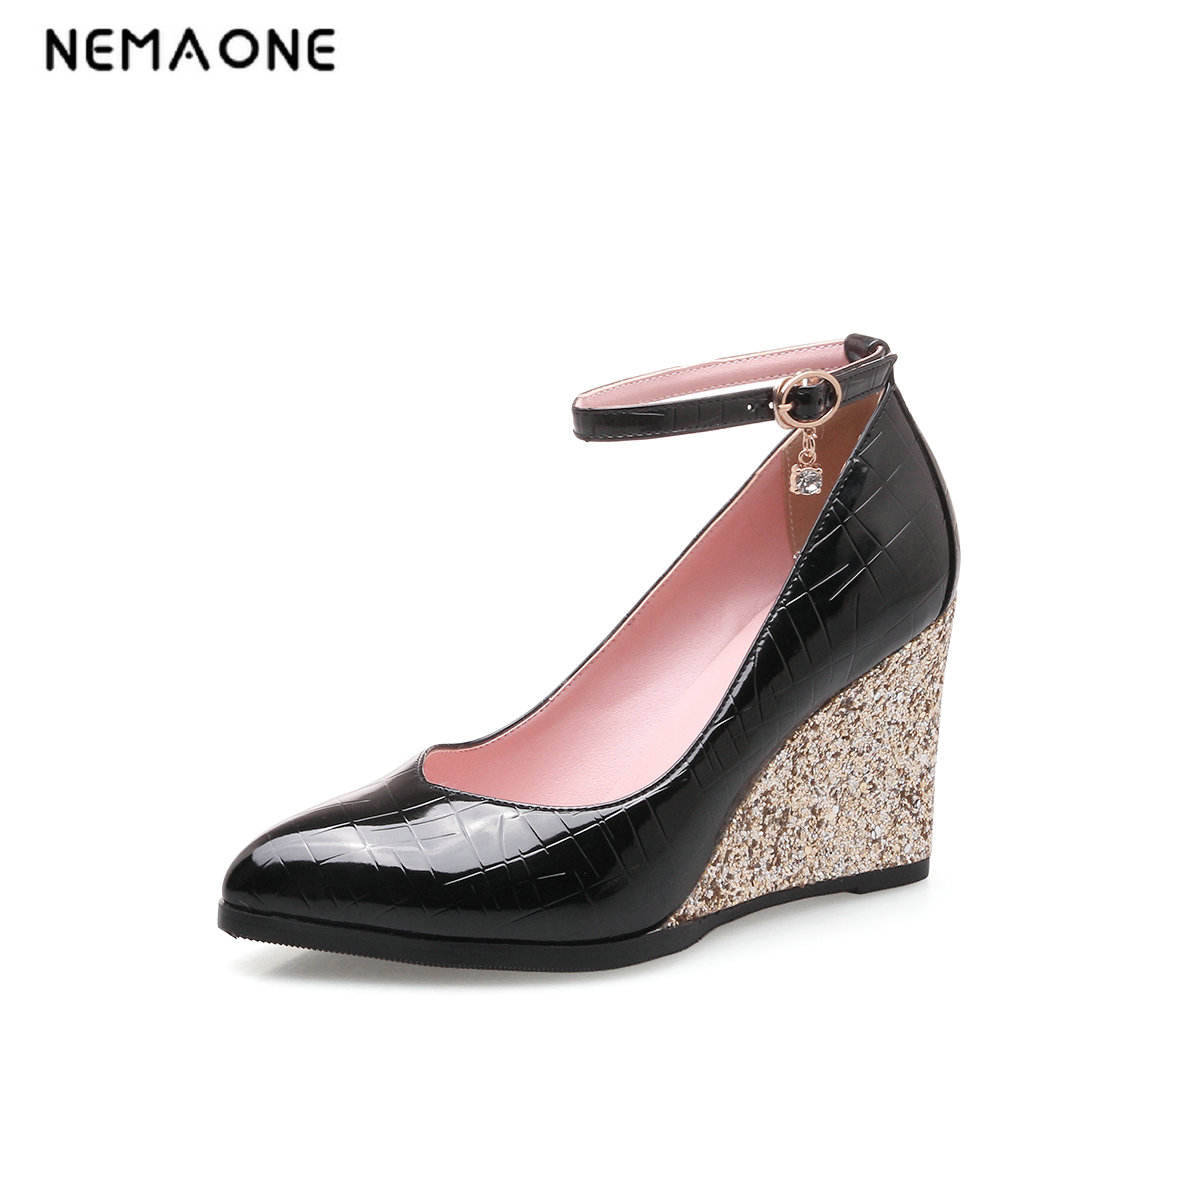 NEMAONE Women Pumps PU Leather Woman Shoes Ankle Strap Platform Wedge High Heel Pointed Toe Ladies Wedding Pumps Size 34-43 nayiduyun women genuine leather wedge high heel pumps platform creepers round toe slip on casual shoes boots wedge sneakers